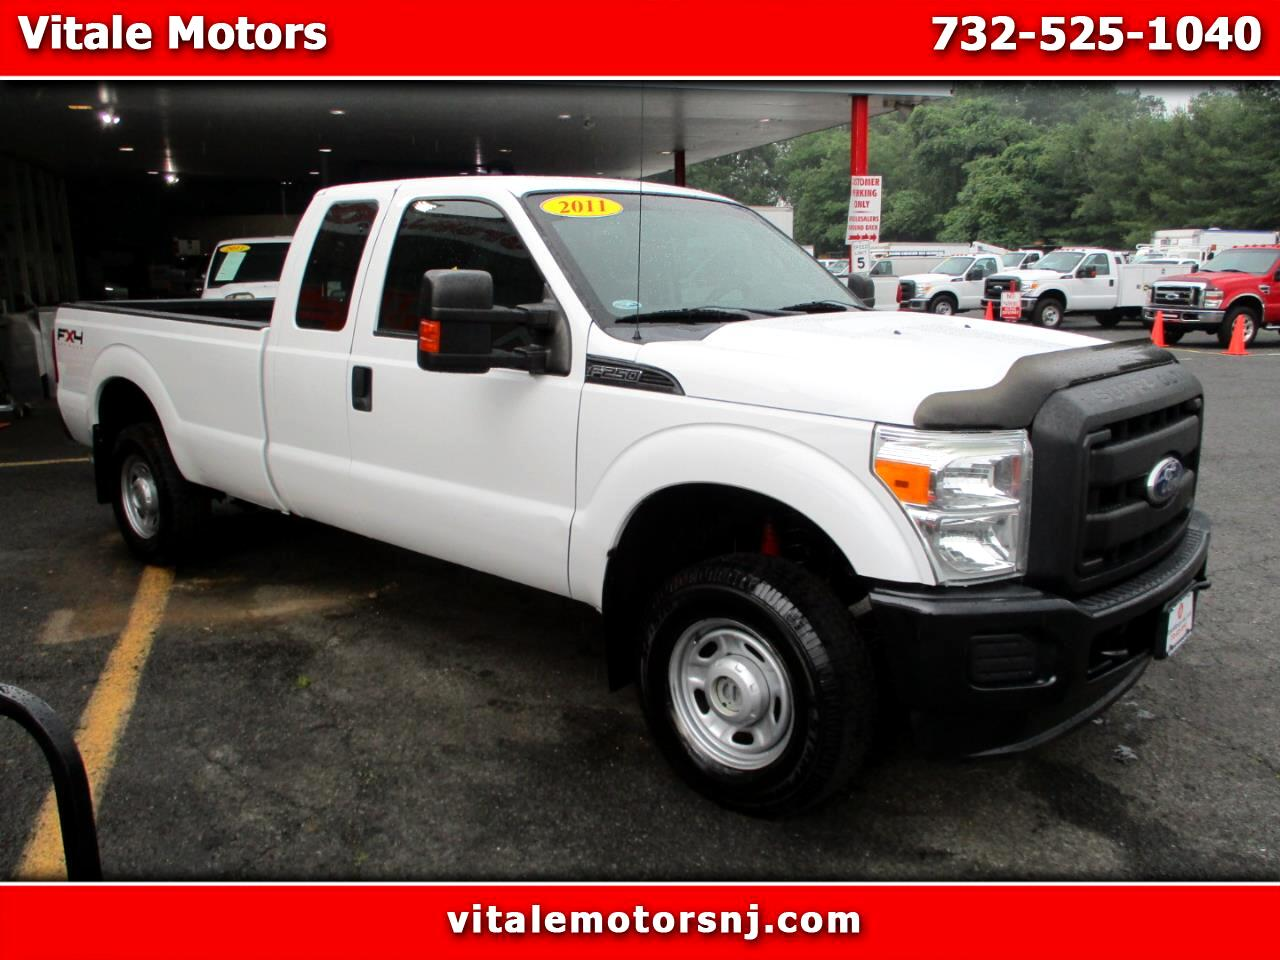 2011 Ford F-250 SD SUPER CAB 4X4 FX4 LONG BED